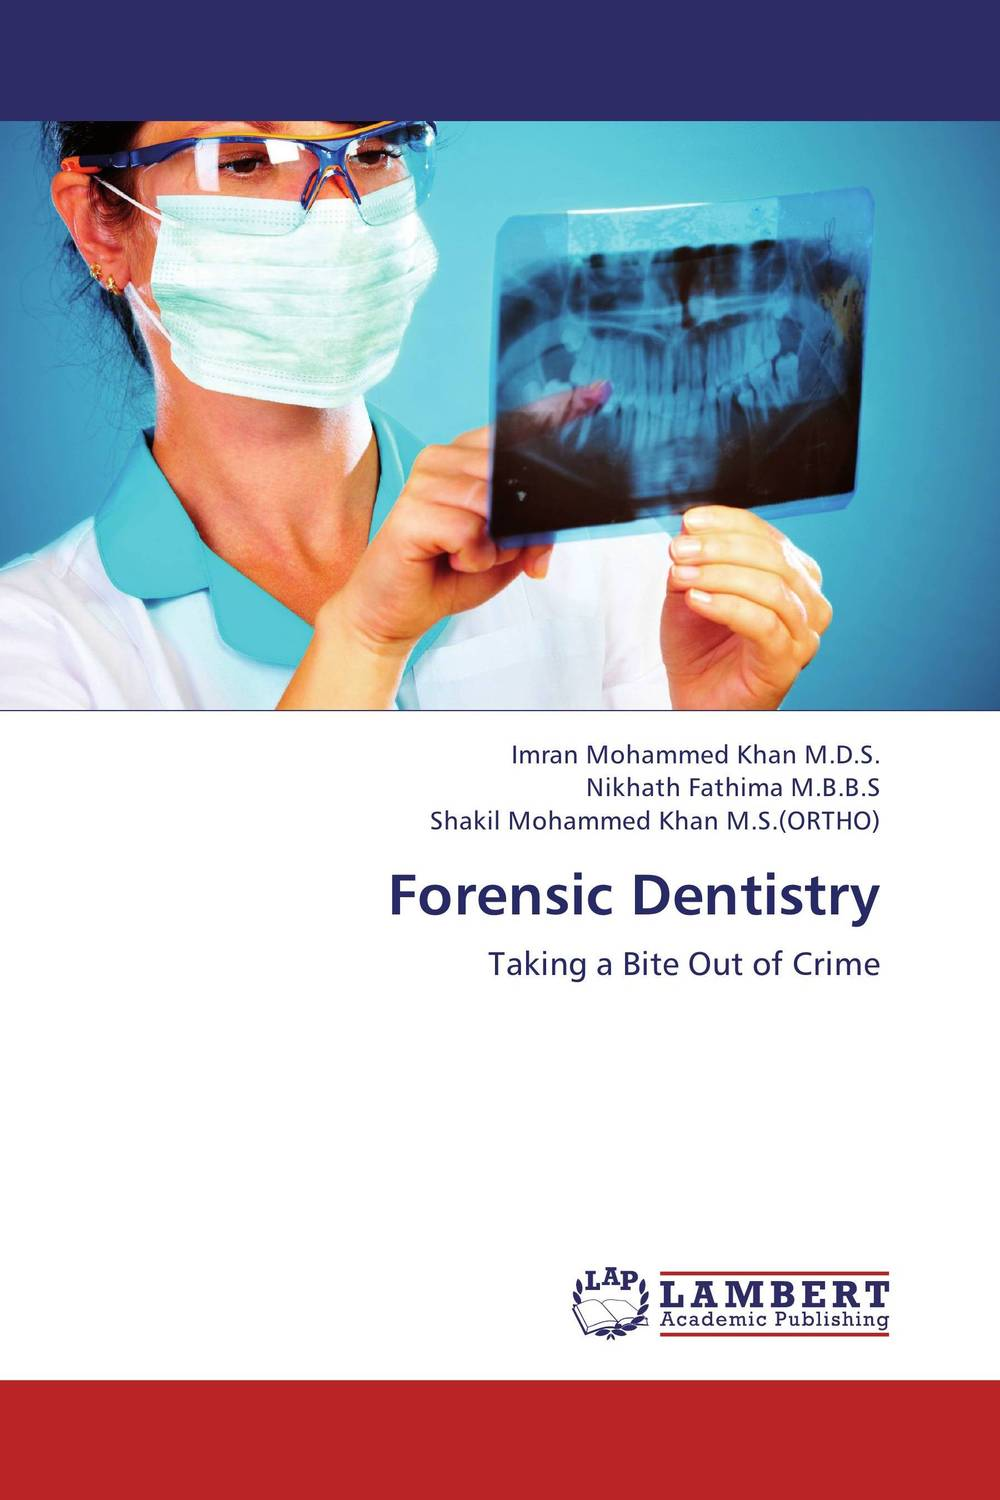 Forensic Dentistry karanprakash singh ramanpreet kaur bhullar and sumit kochhar forensic dentistry teeth and their secrets